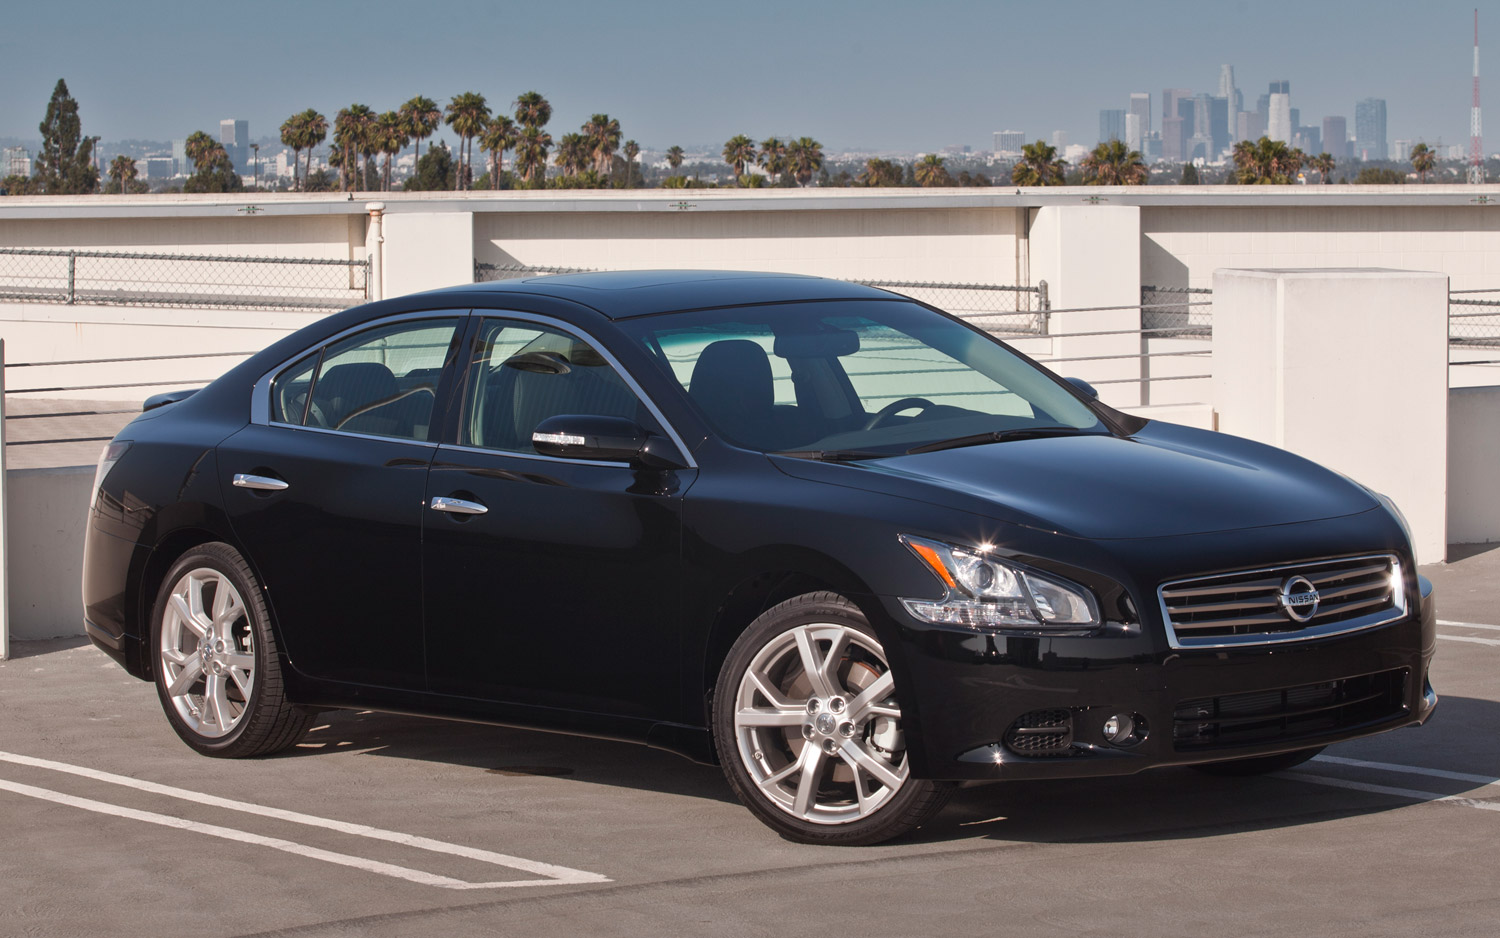 2013 Nissan Maxima To Cost $33,560, Maxima SV Price Drops By $40